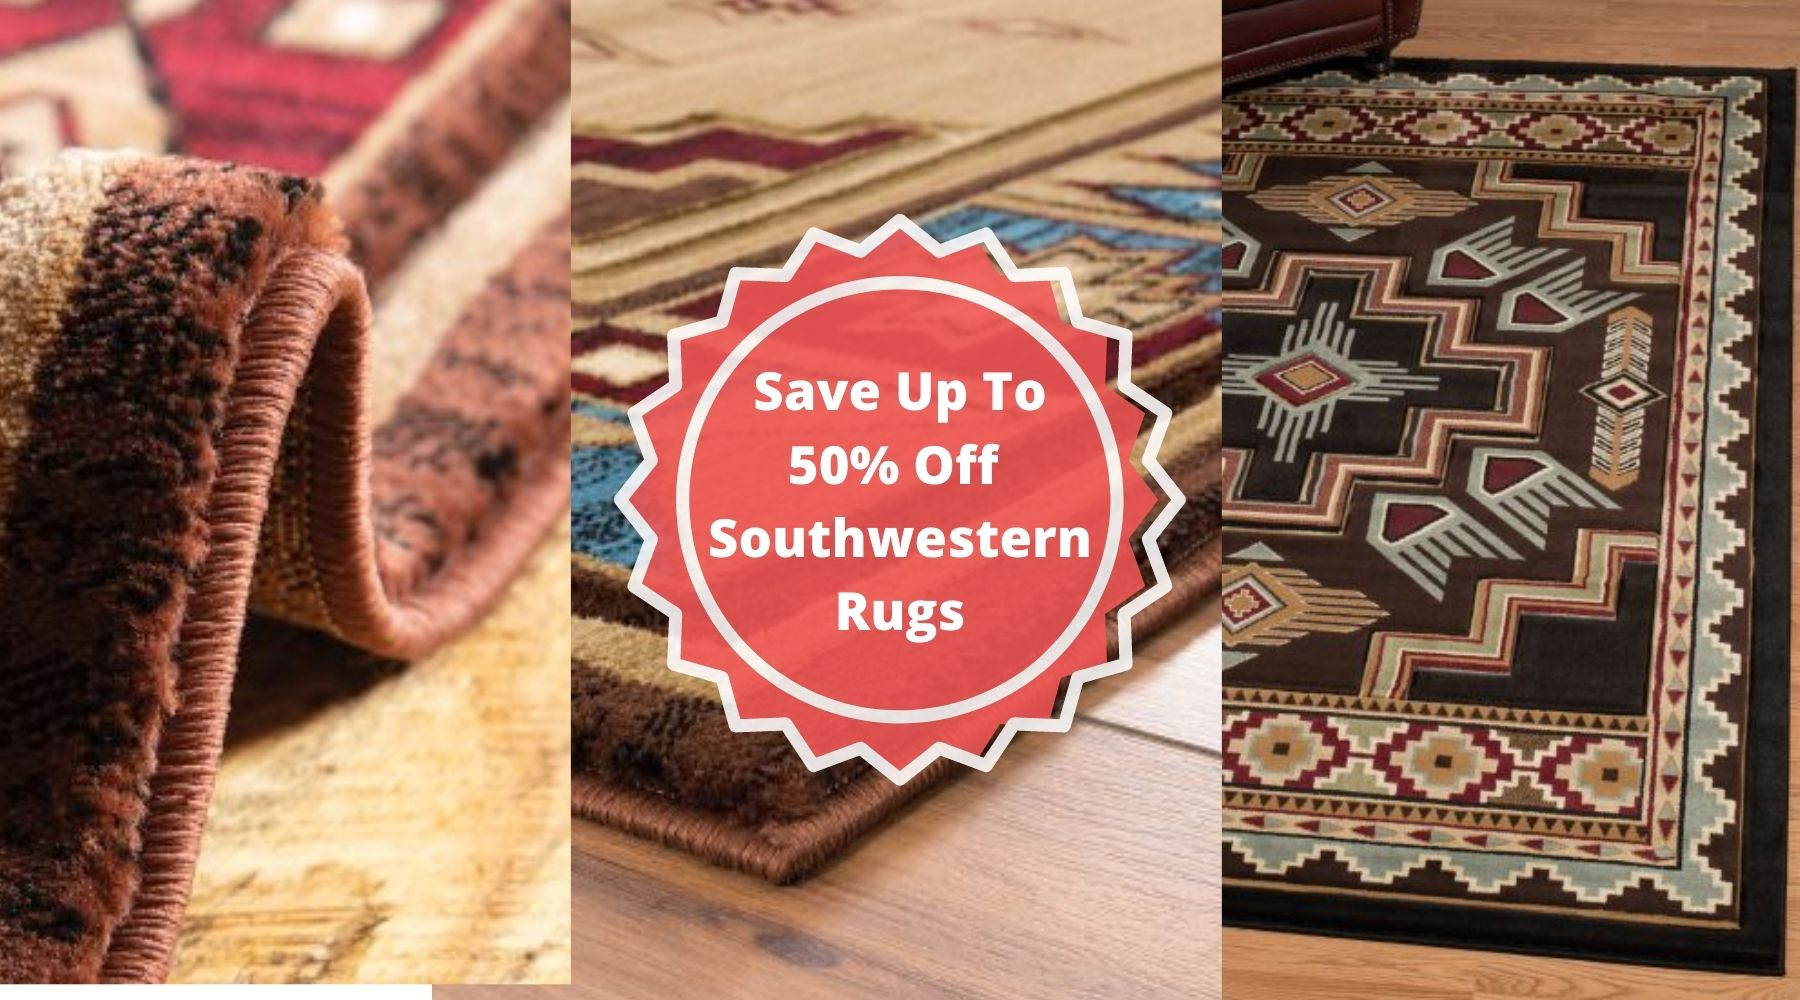 Southwestern Rugs Sale Promotion | Rugs For Sale Outlet